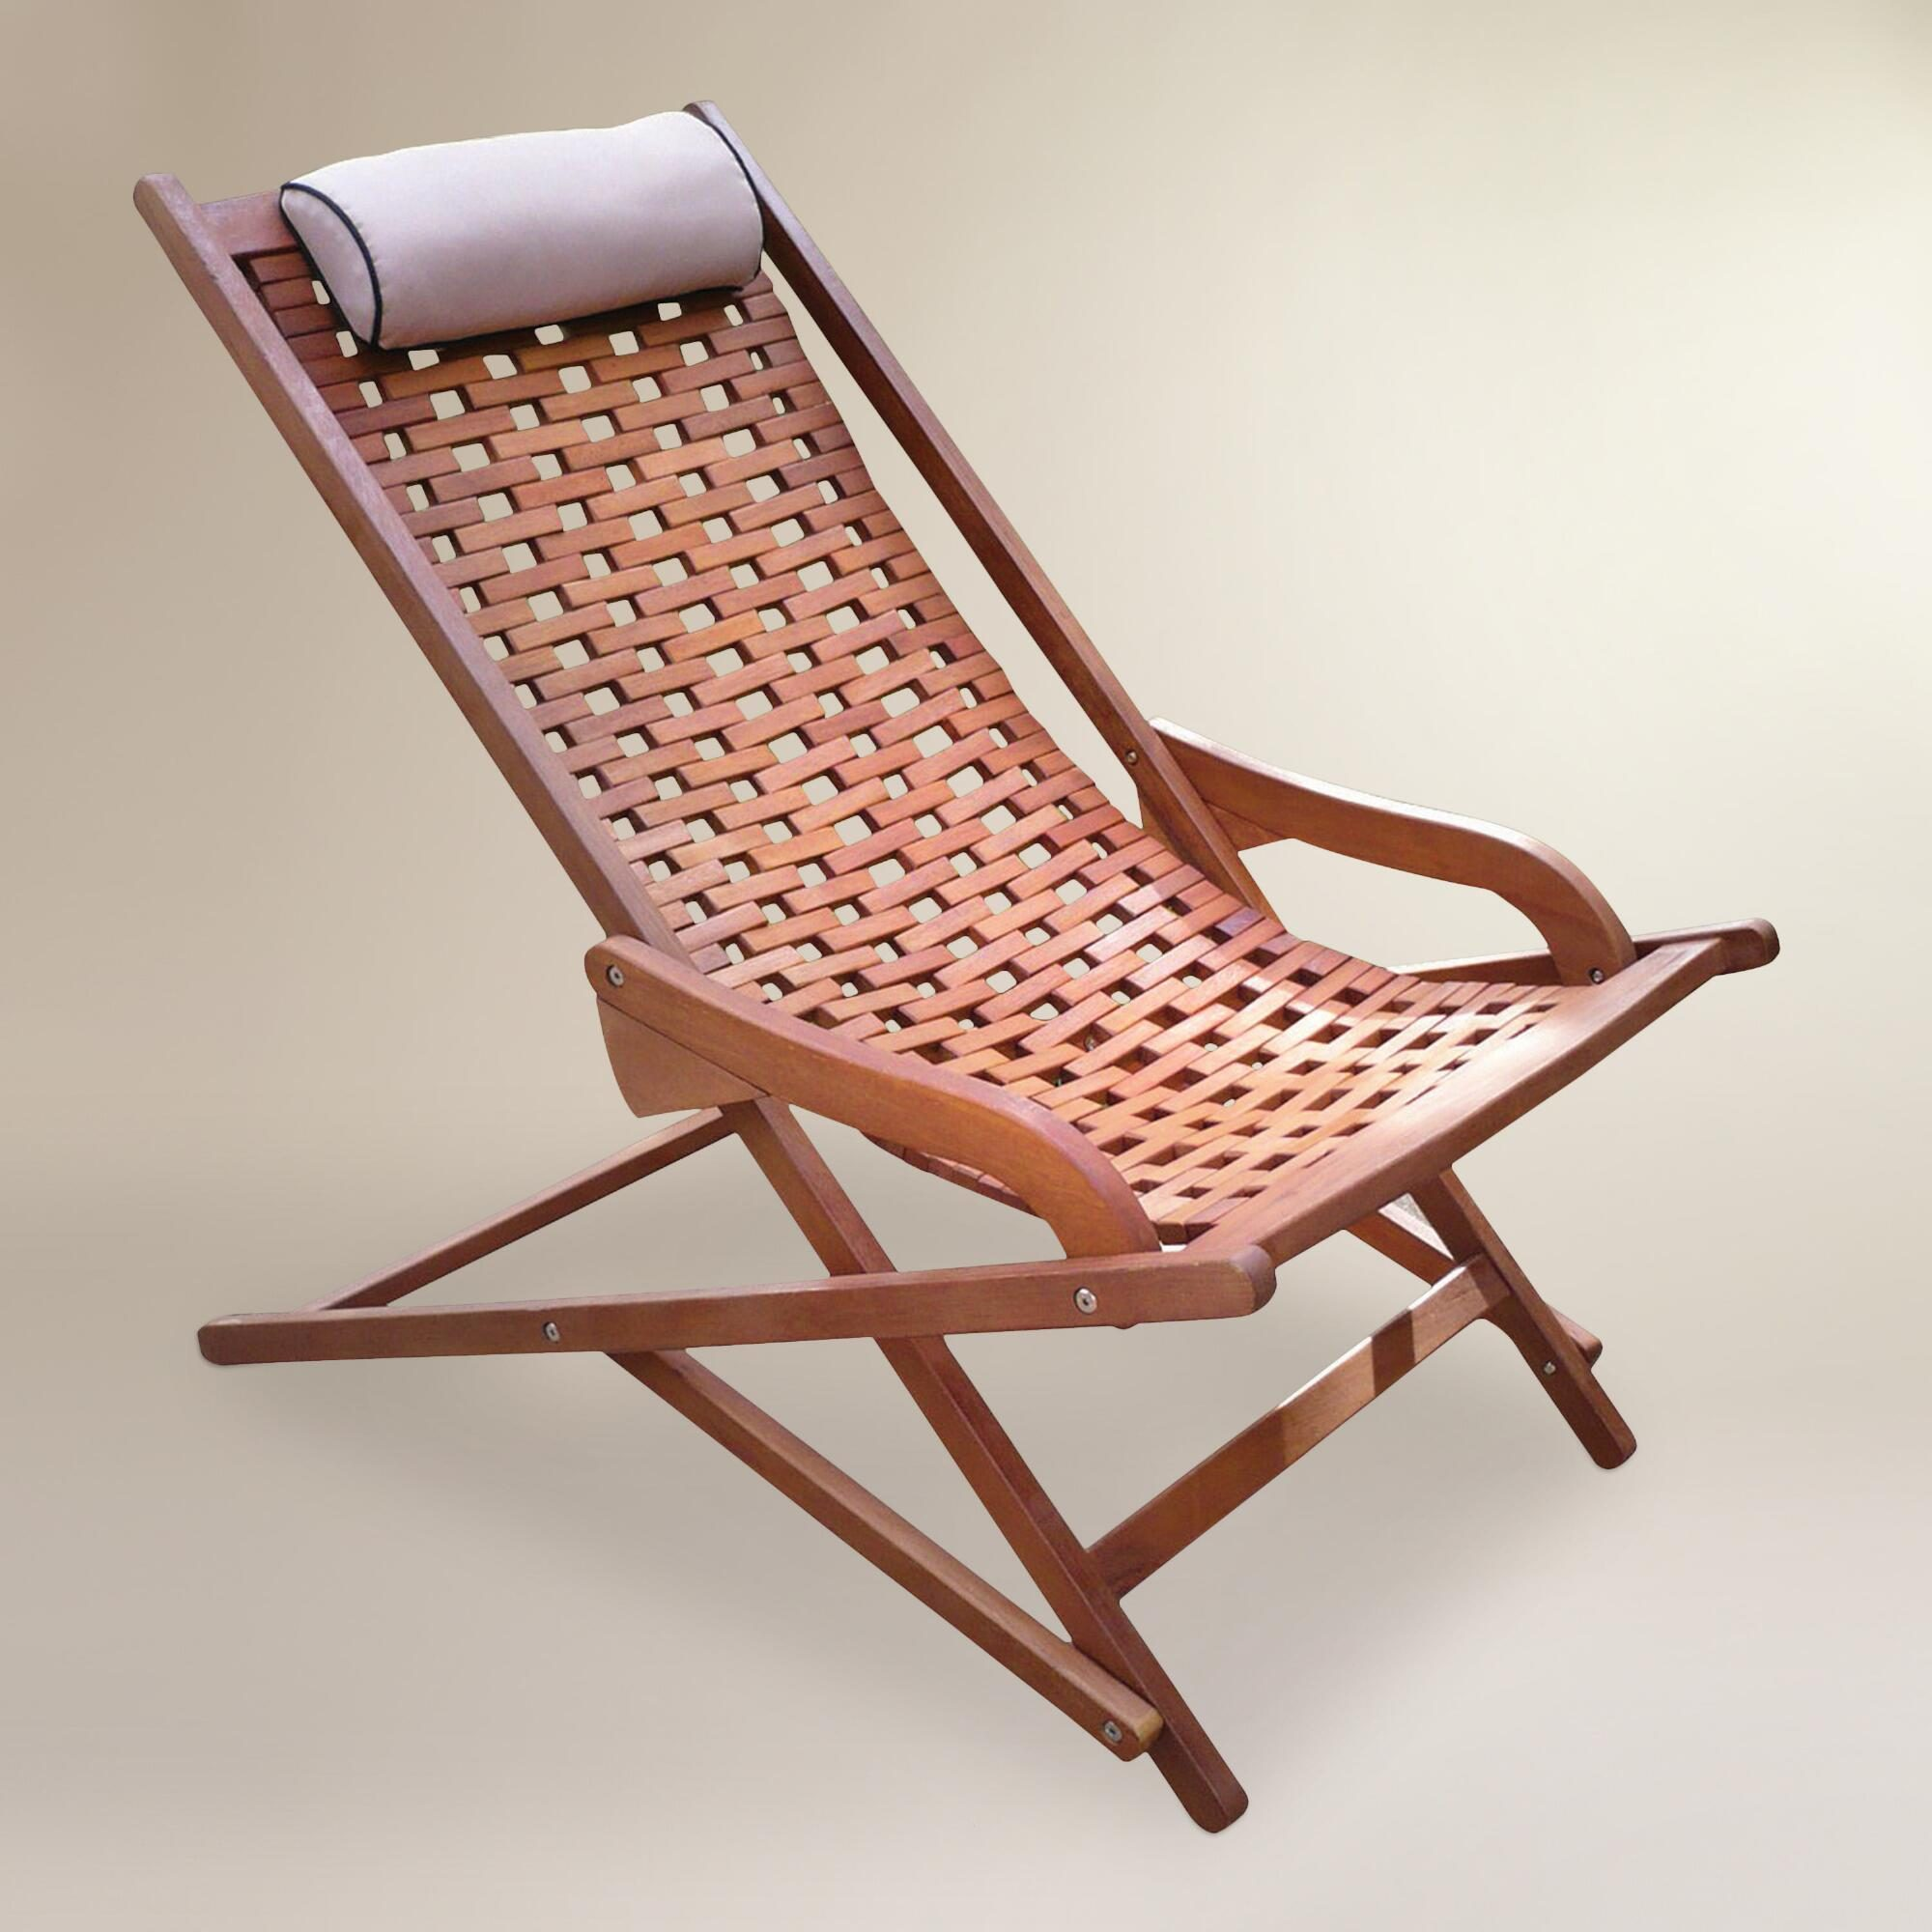 Wood Catania Swinger Lounger with Pillow: Brown by World Market